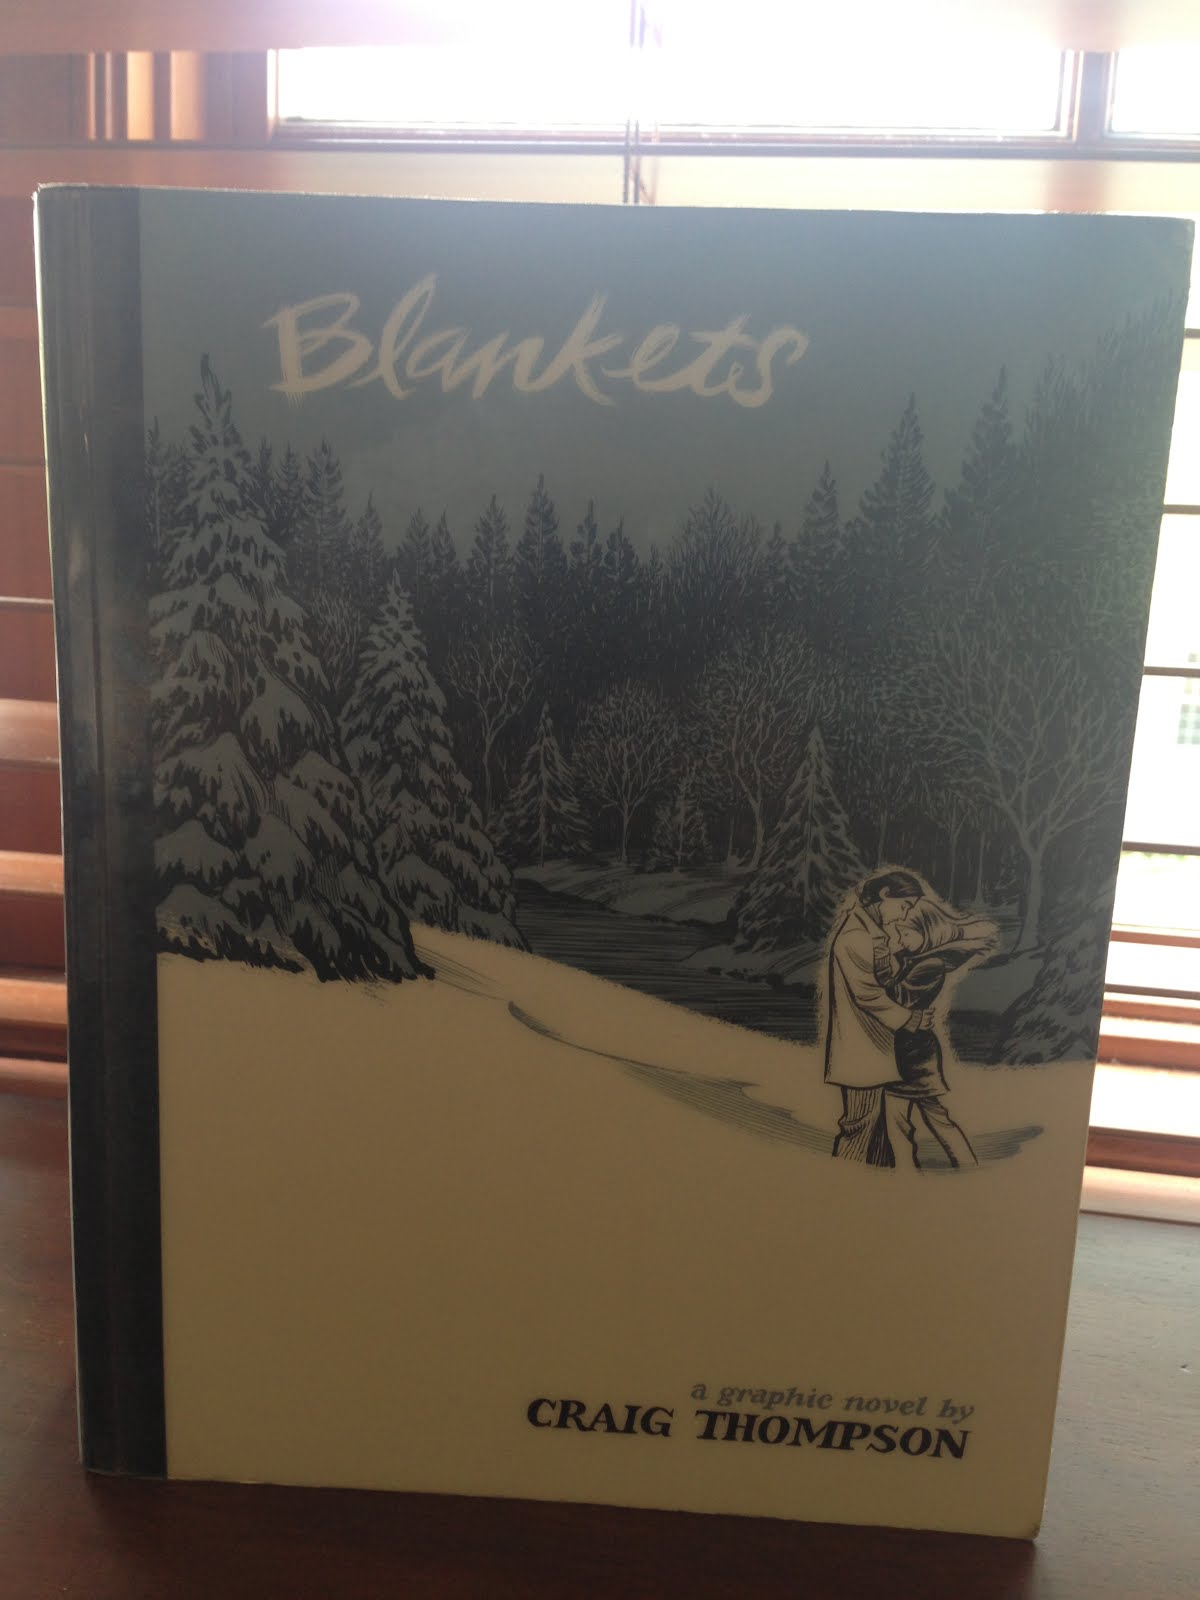 Blankets -- Craig Thompson